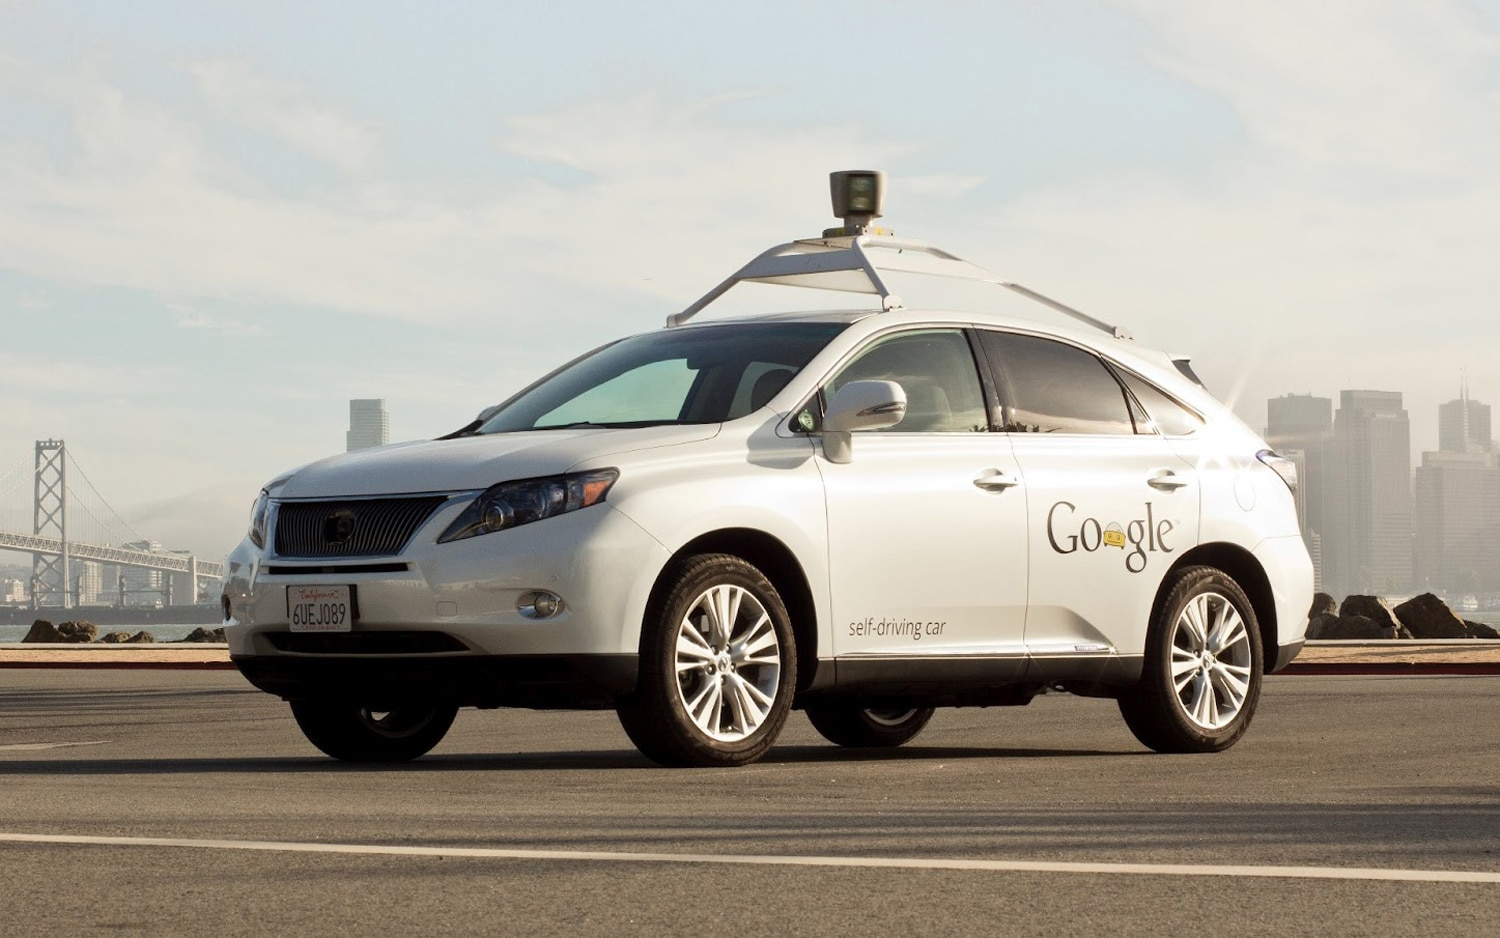 Google Lexus RX Autonomous Vehicle